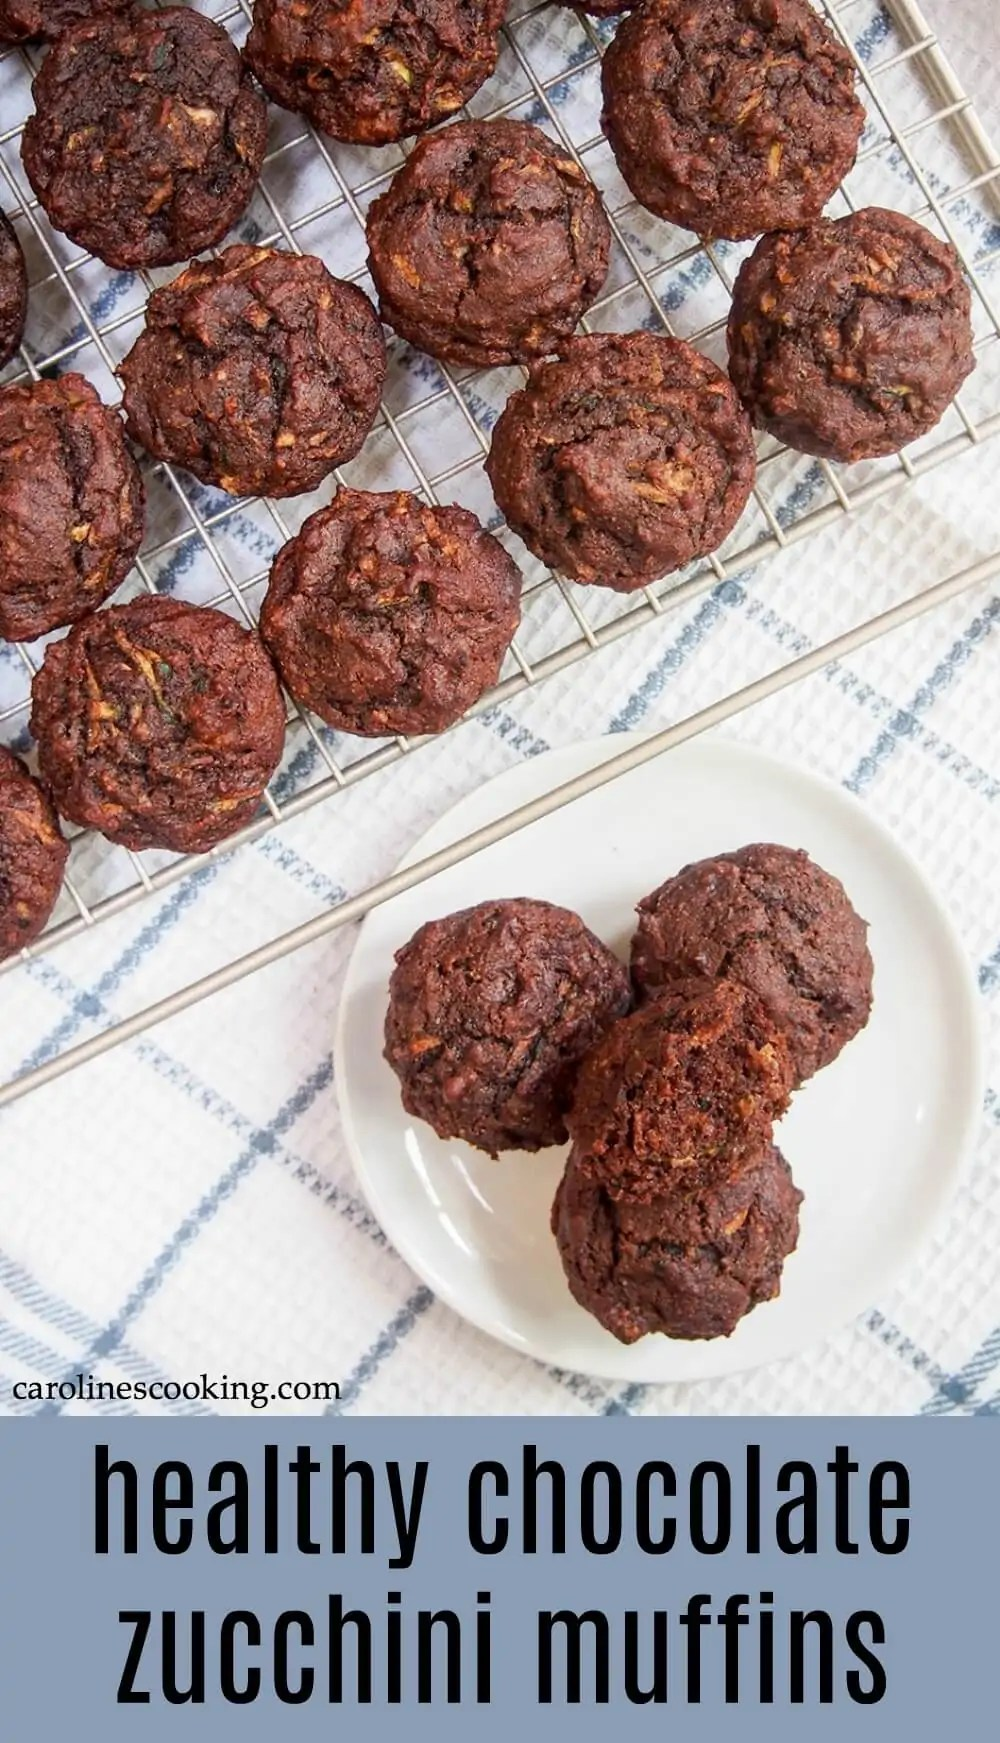 These healthy chocolate zucchini muffins are vegan and easily made gluten-free. With great ingredients, including zucchini and dates, you can feel good about enjoying them. #chocolatezucchinimuffin #healthybaking #veganmuffin